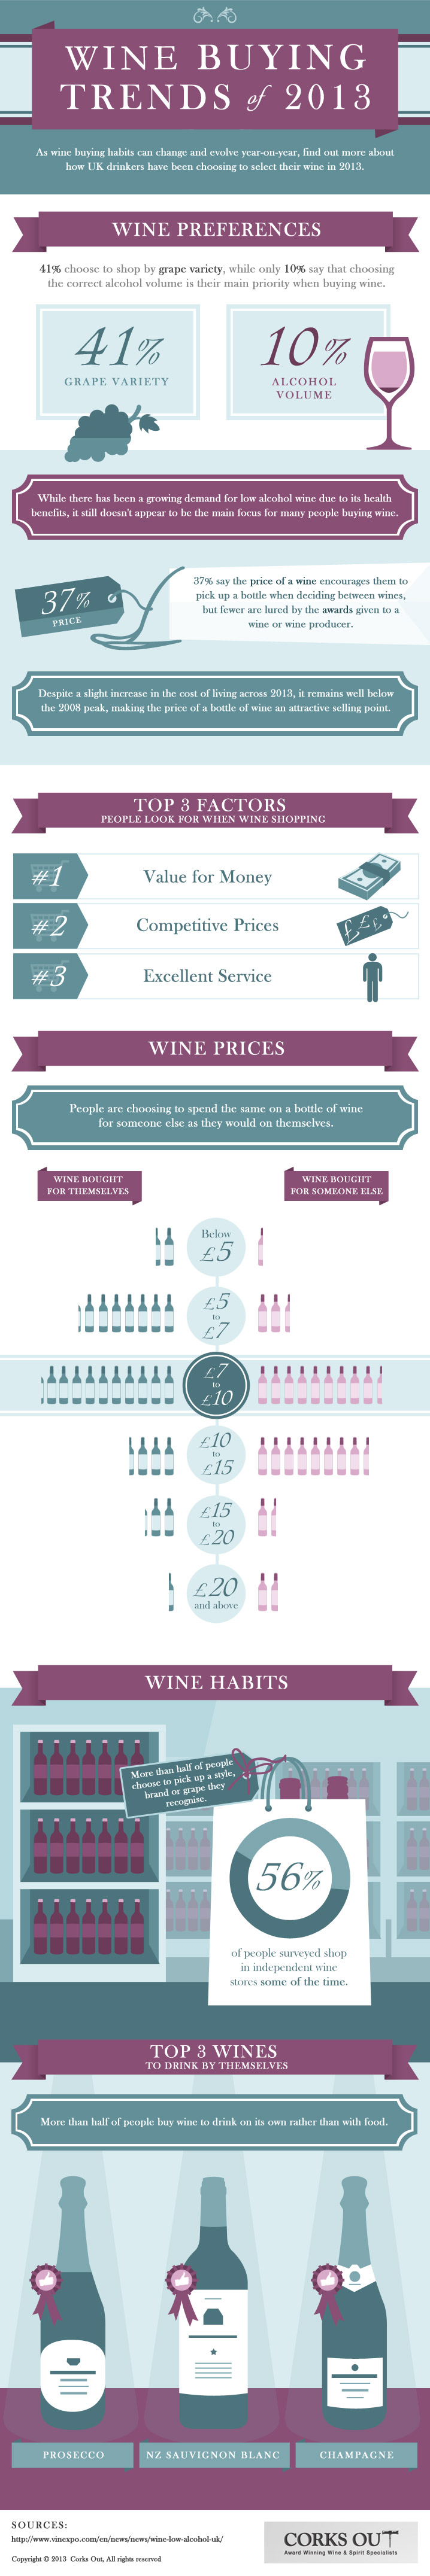 Wine Buying Habits of 2013